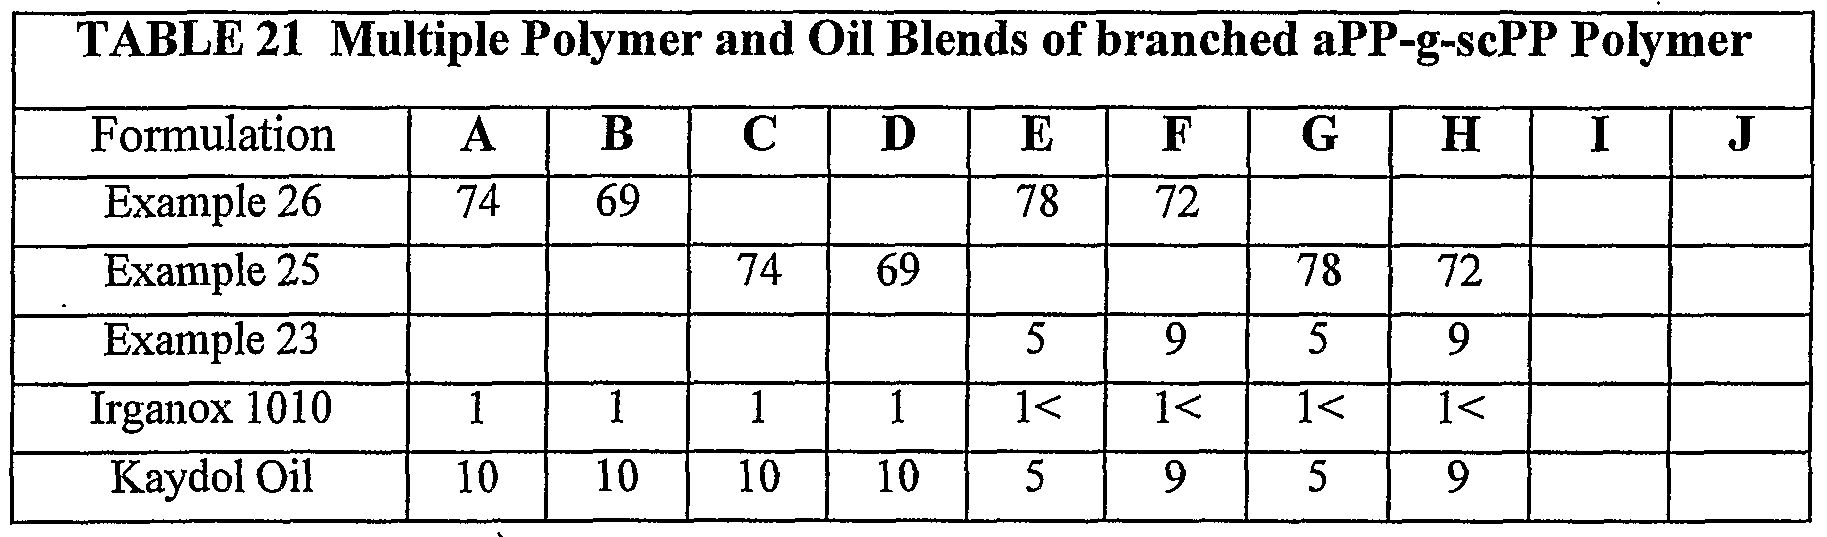 WO2005108442A1 - Polyolefin adhesive compositions and articles made